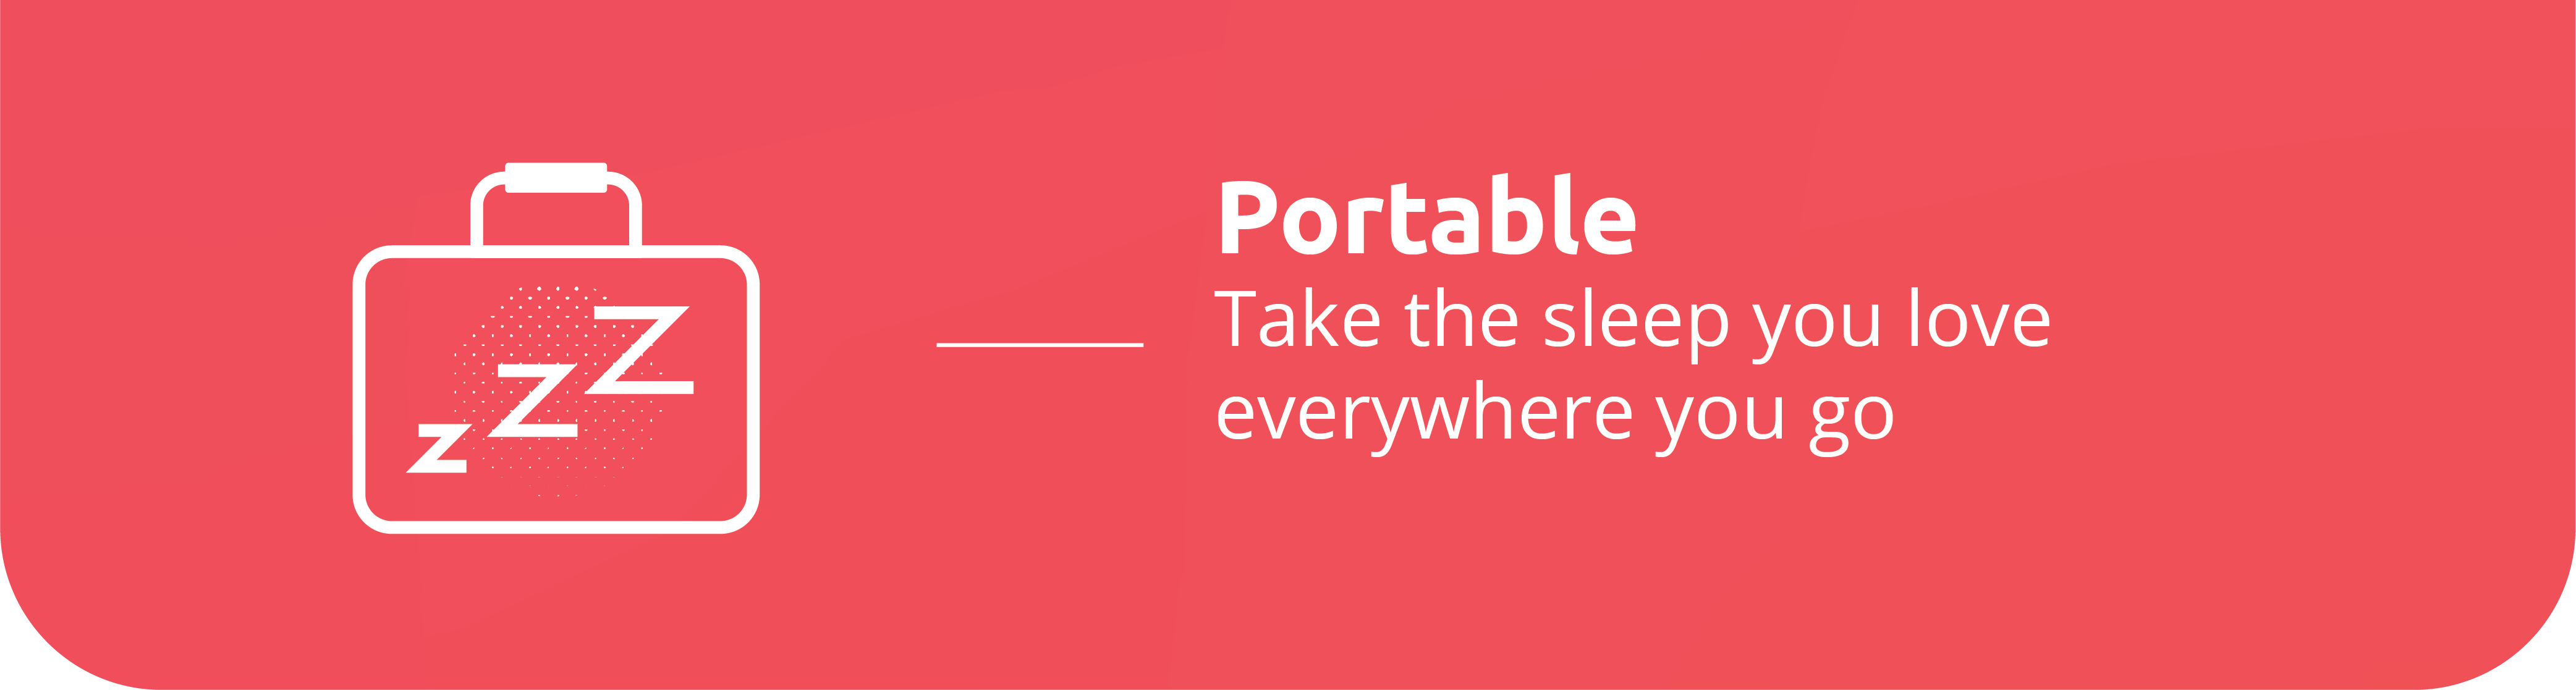 Portable Bed Infographic